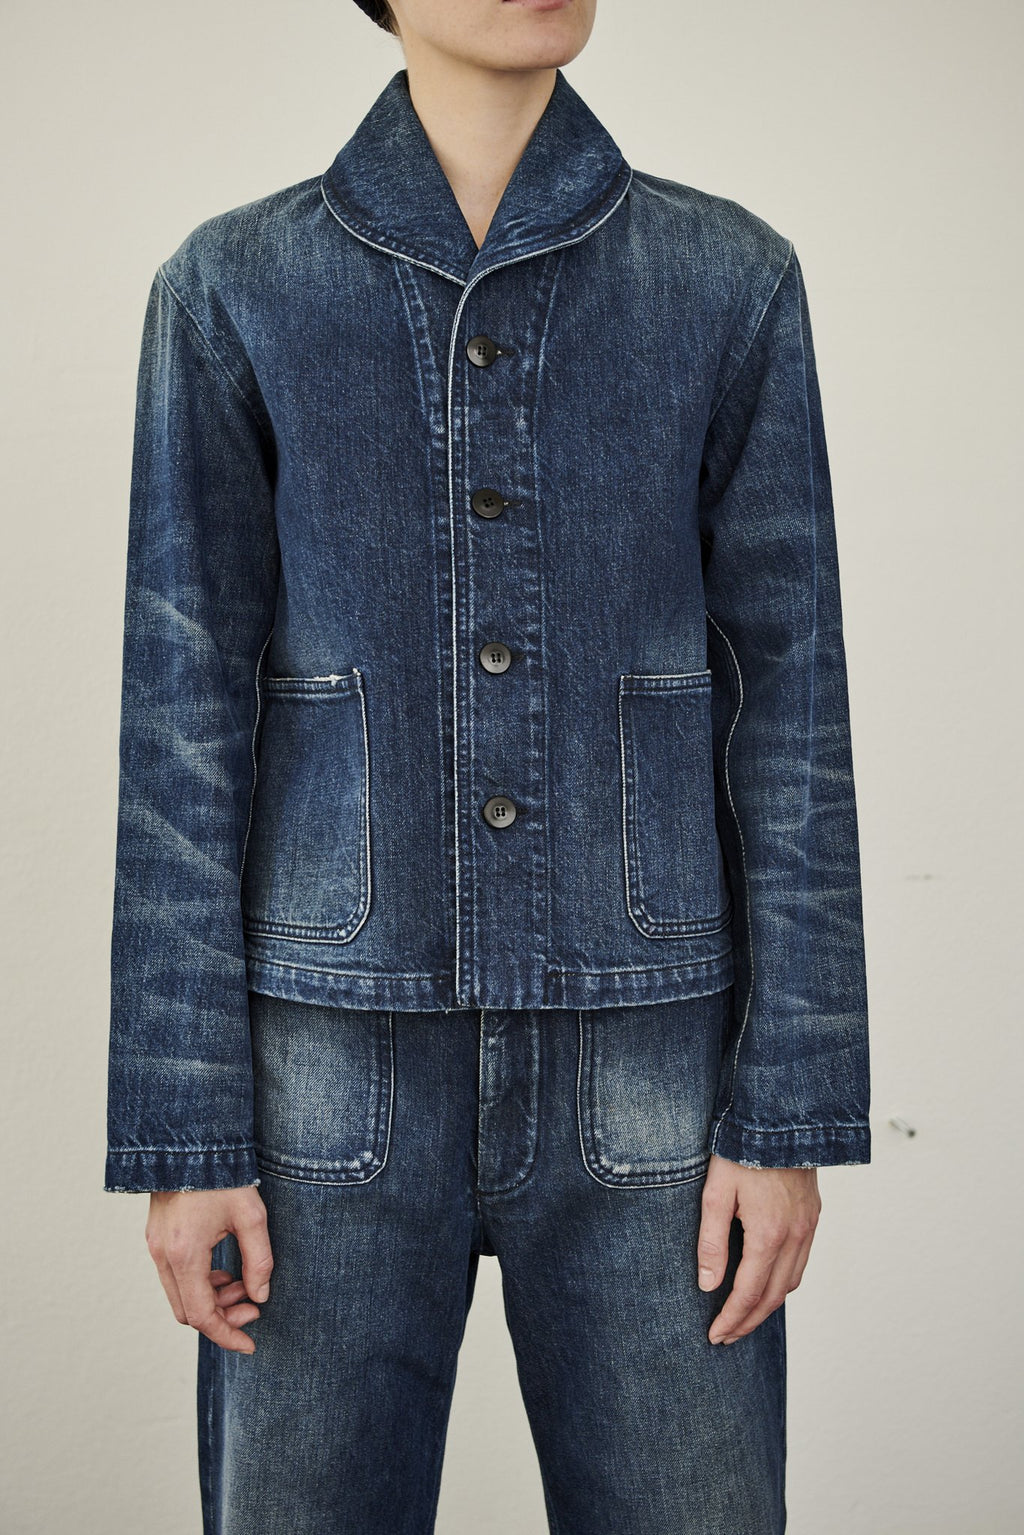 PEPPINOPEPPINO JEANS - TYPE 28 JACKET